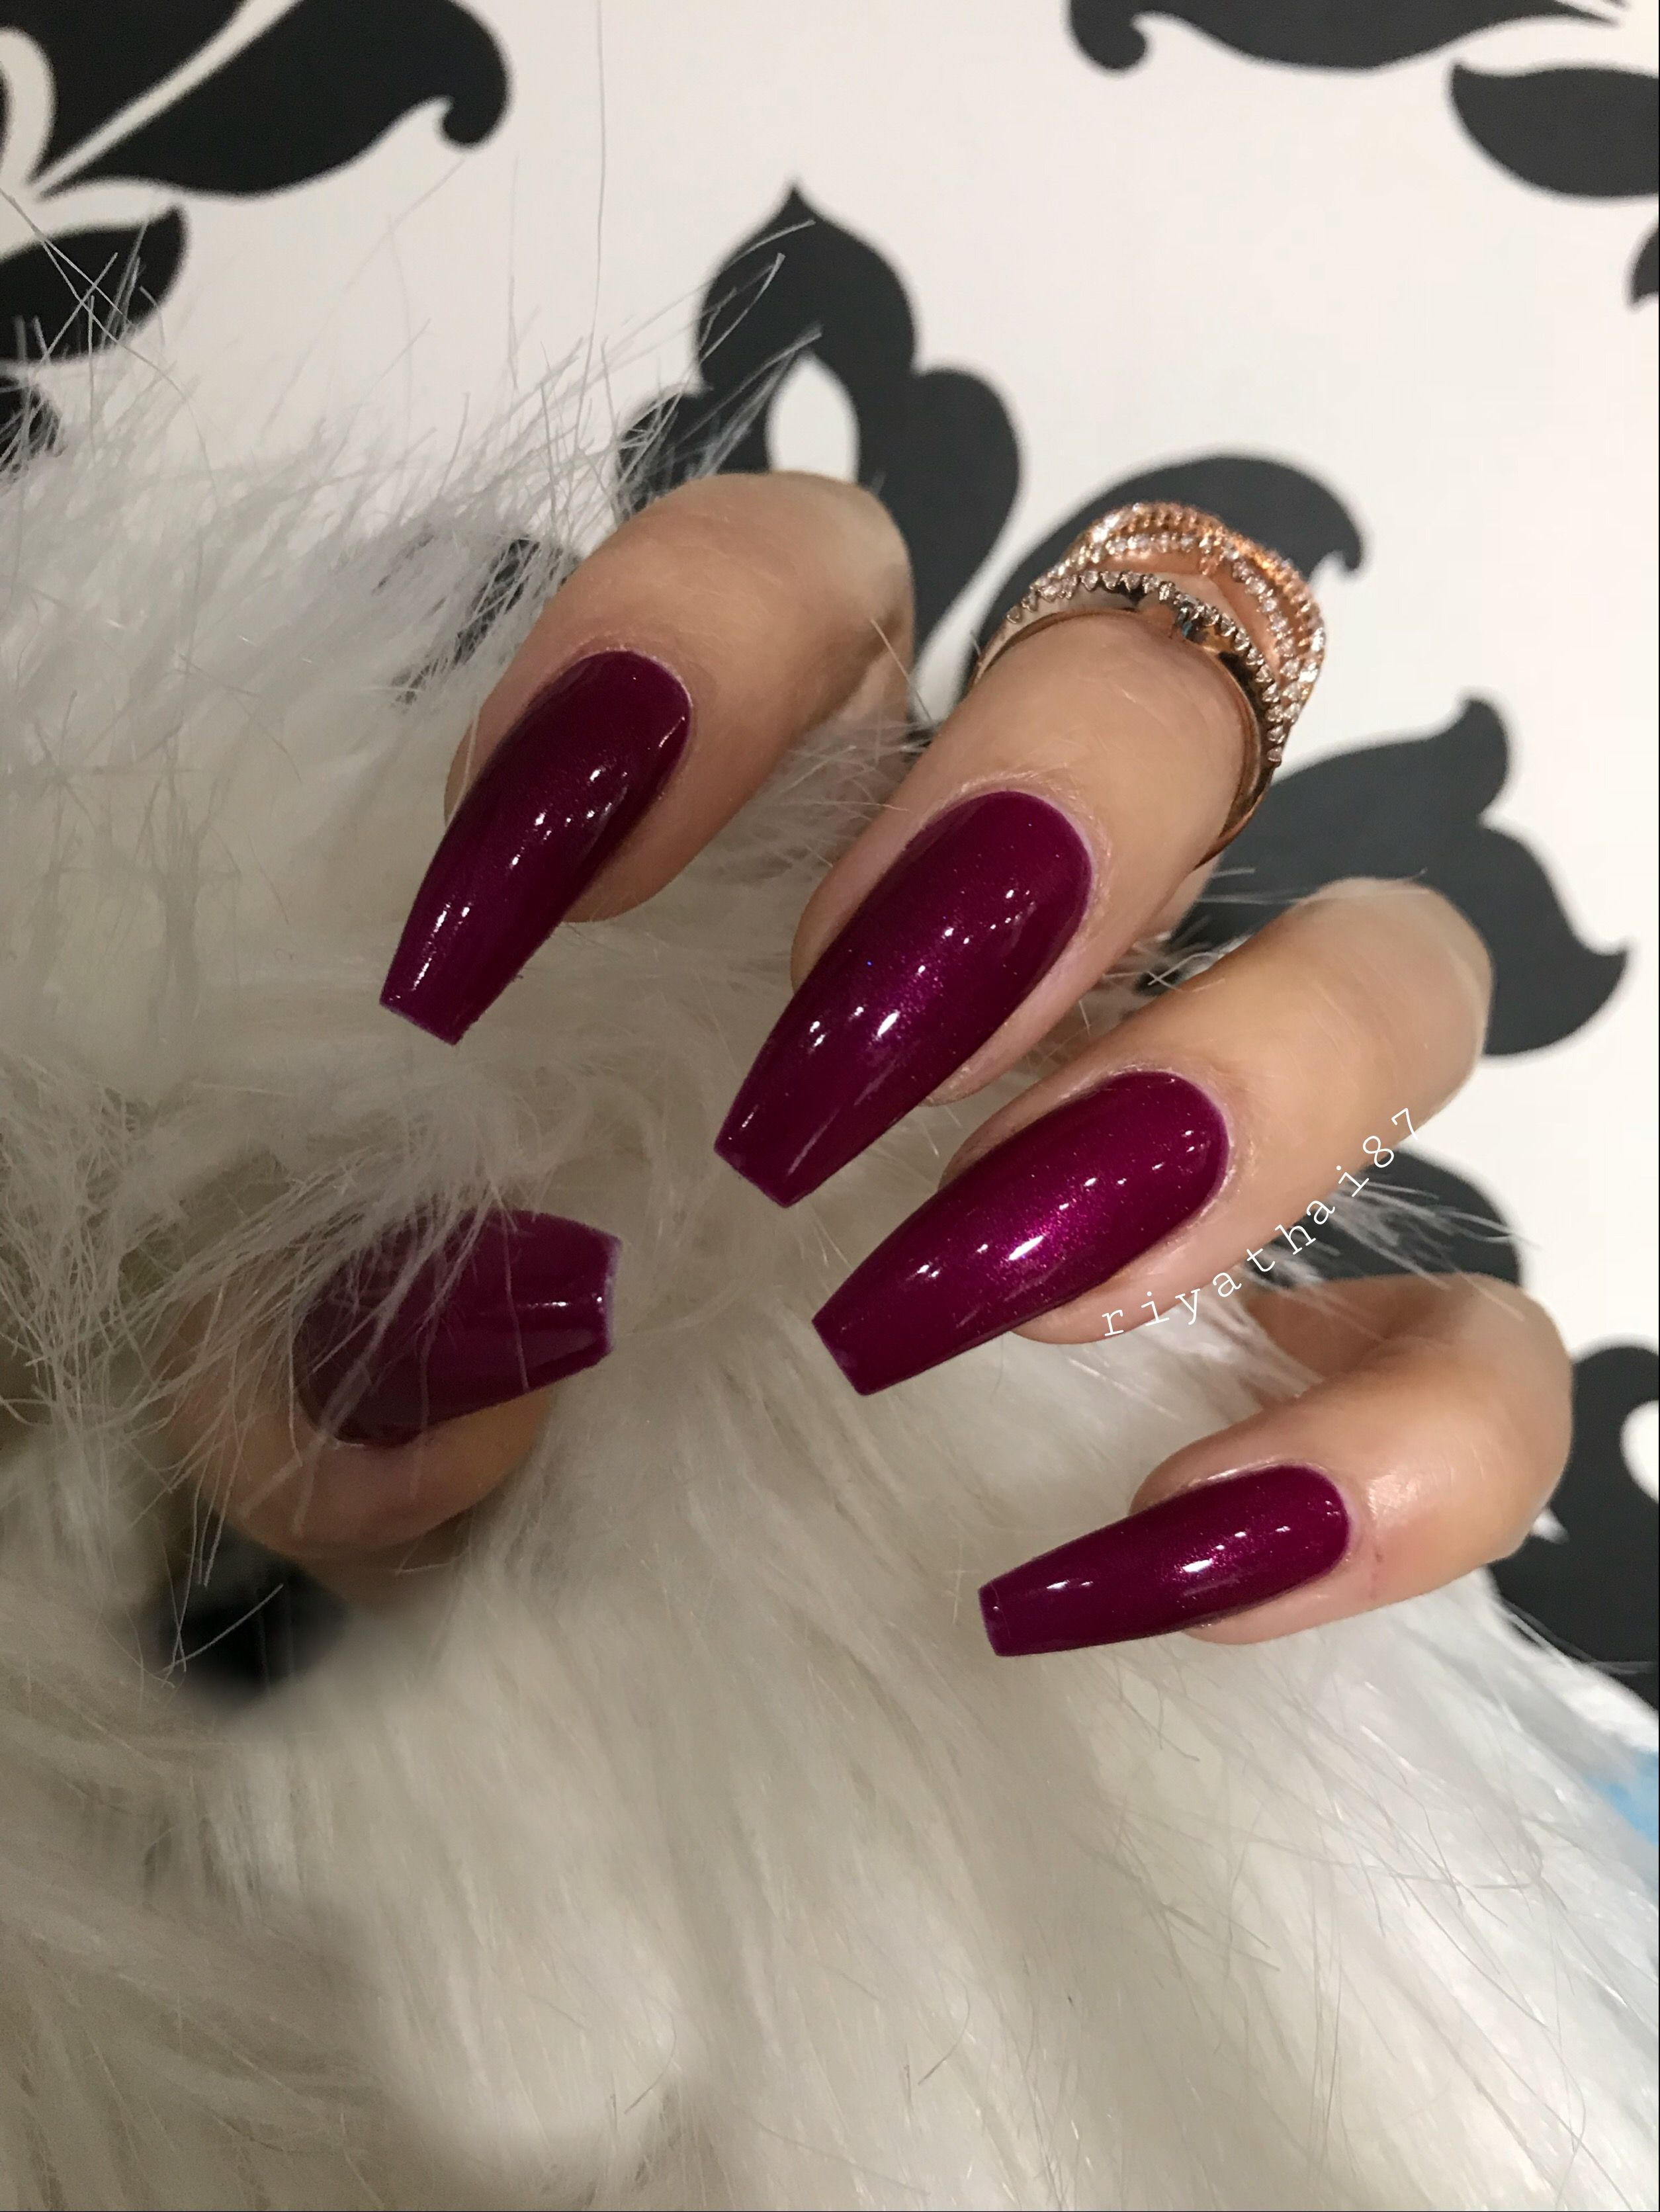 The ombre nail art designs look very glamorous for women. They seem ...